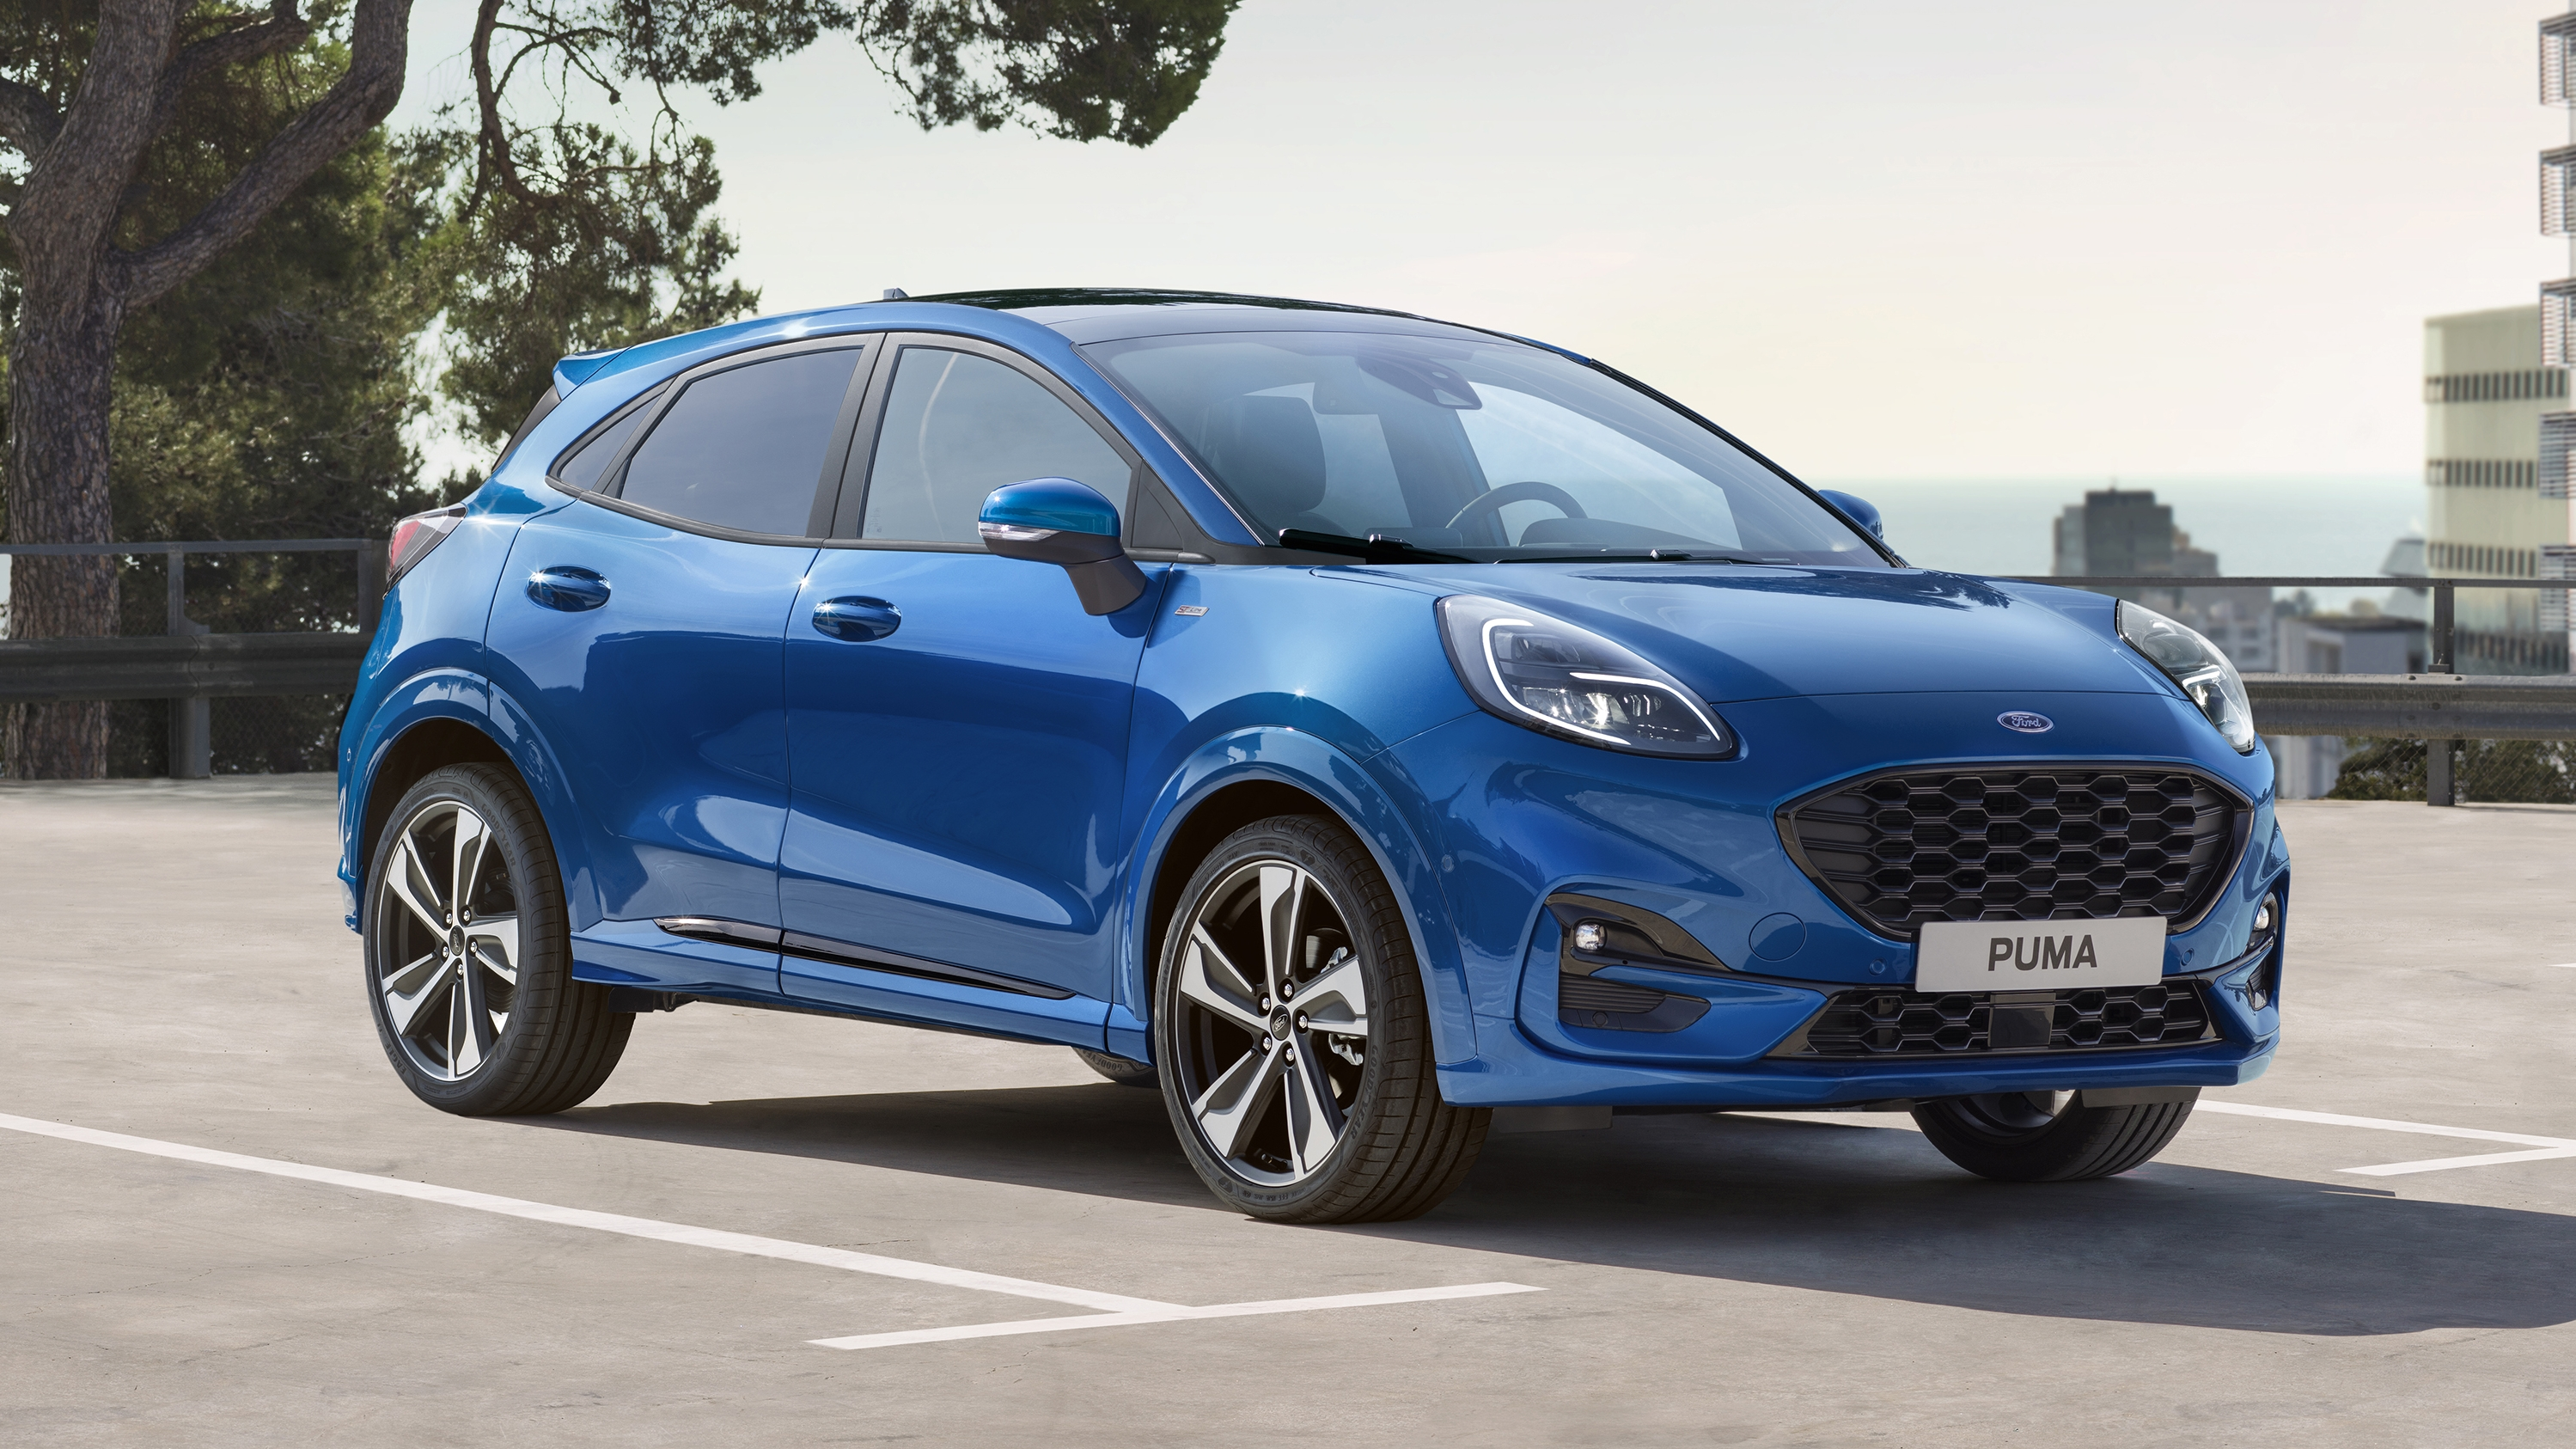 2020 Ford Puma Quirks And Features Top Speed